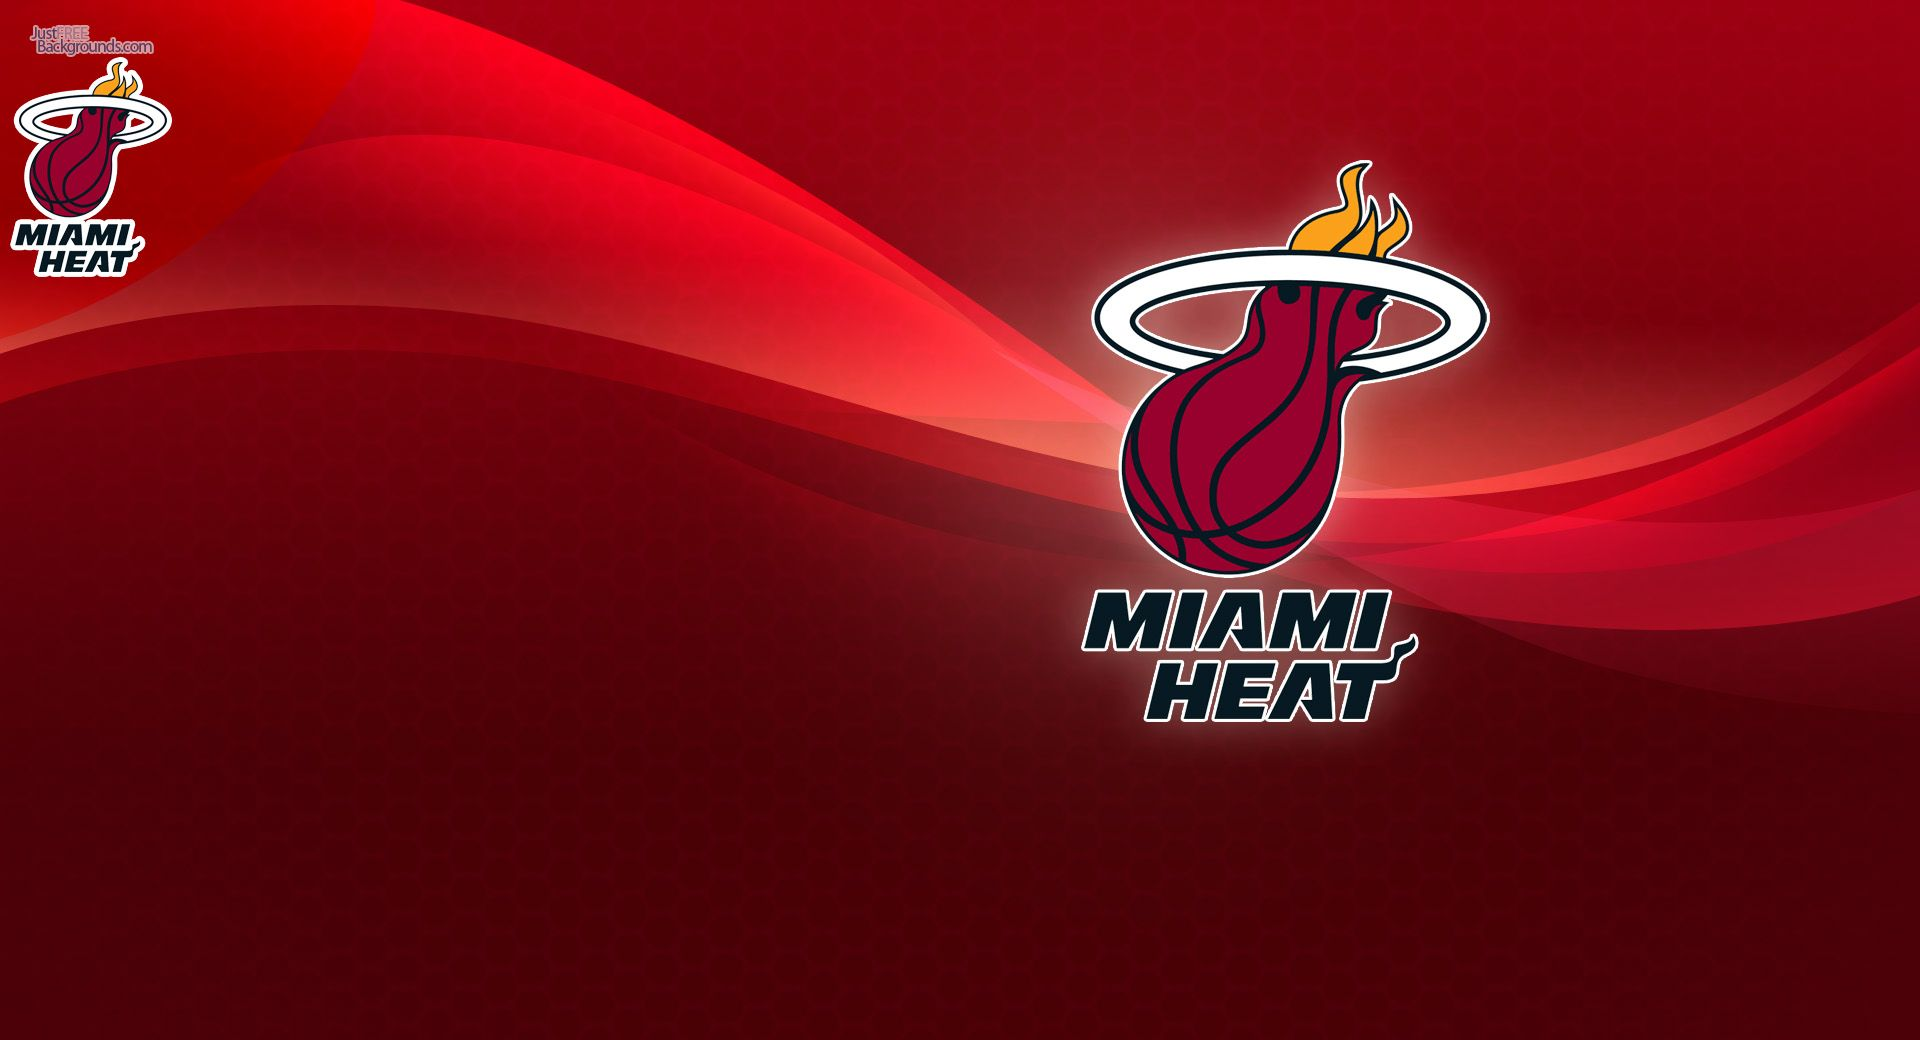 Miami Heat Miami Heat Nba Wallpapers Basketball Wallpaper